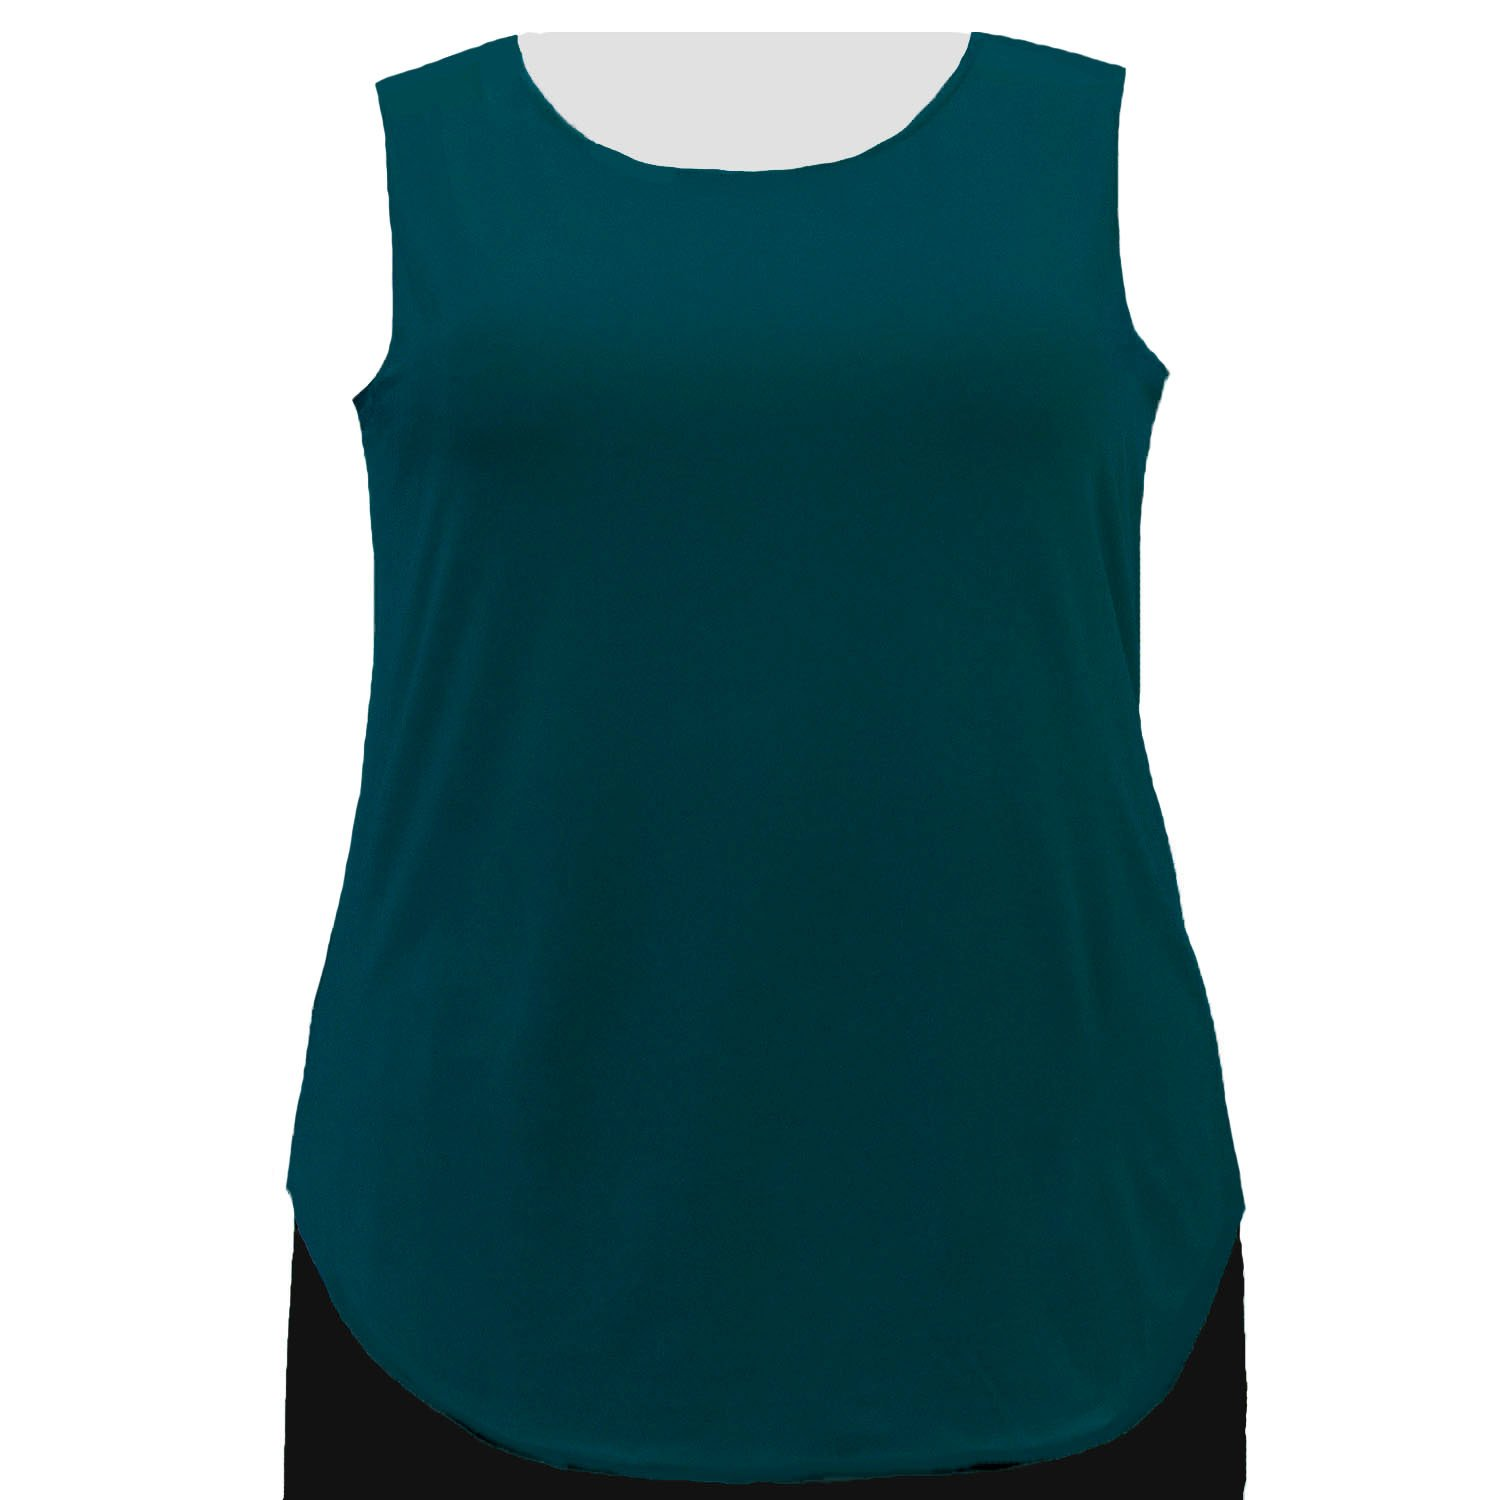 A Personal Touch Women's Plus Size Alpine Green Tank Top